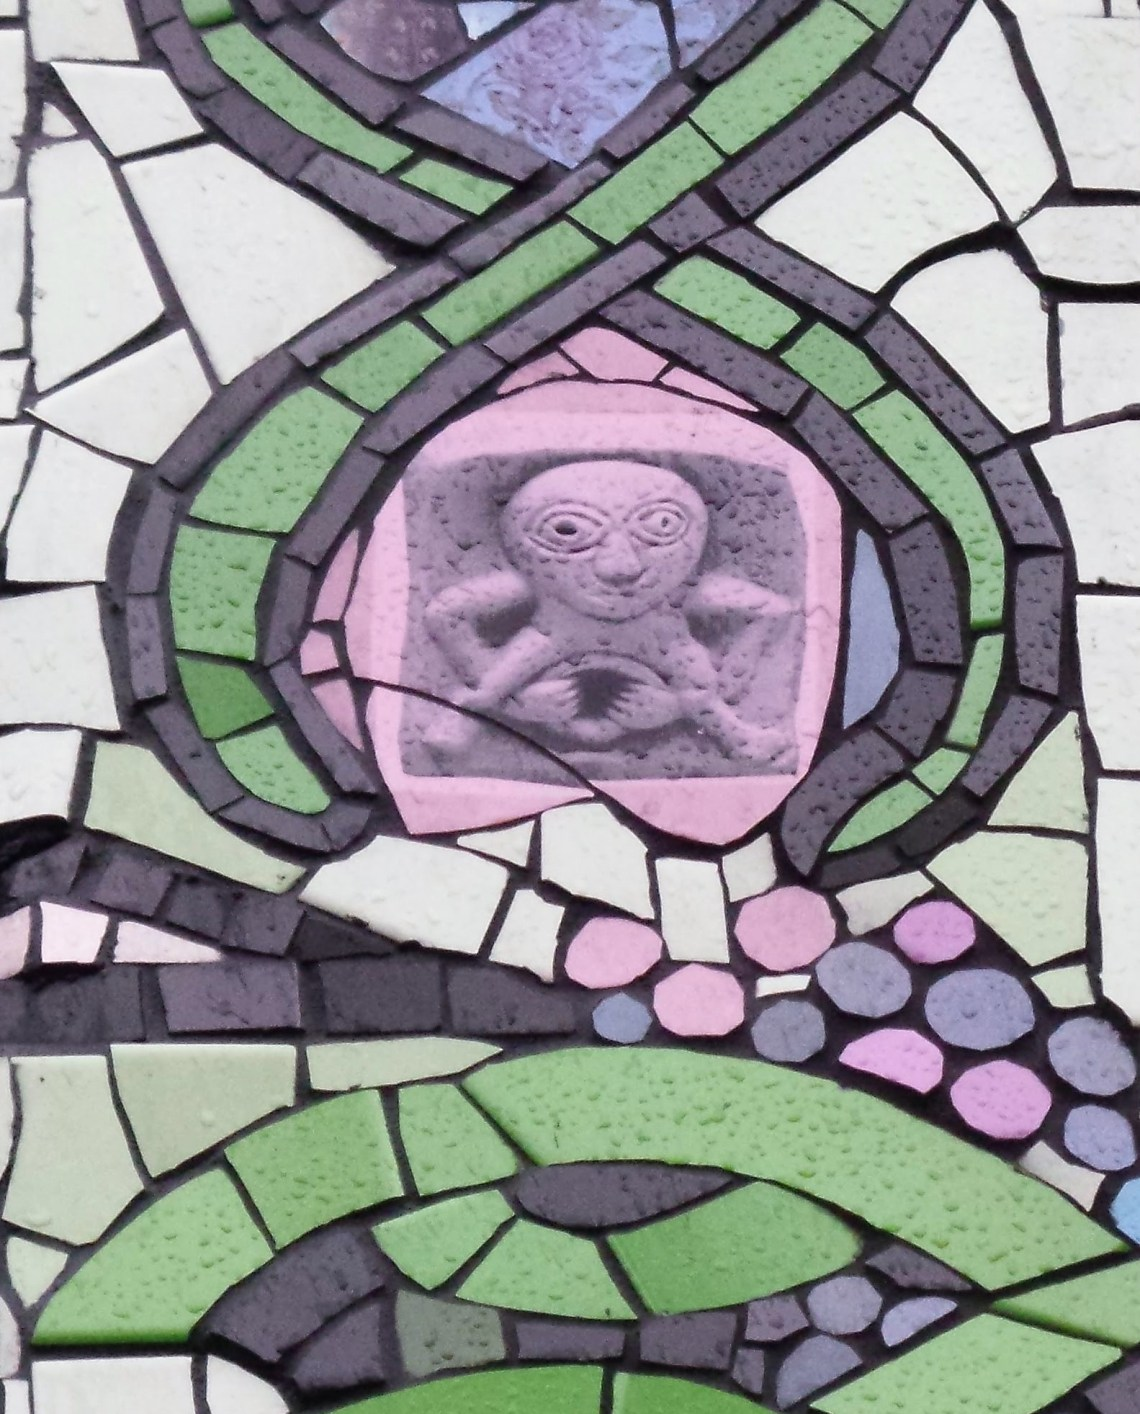 A Sheela Na Gig hidden on the front of the mosaic house